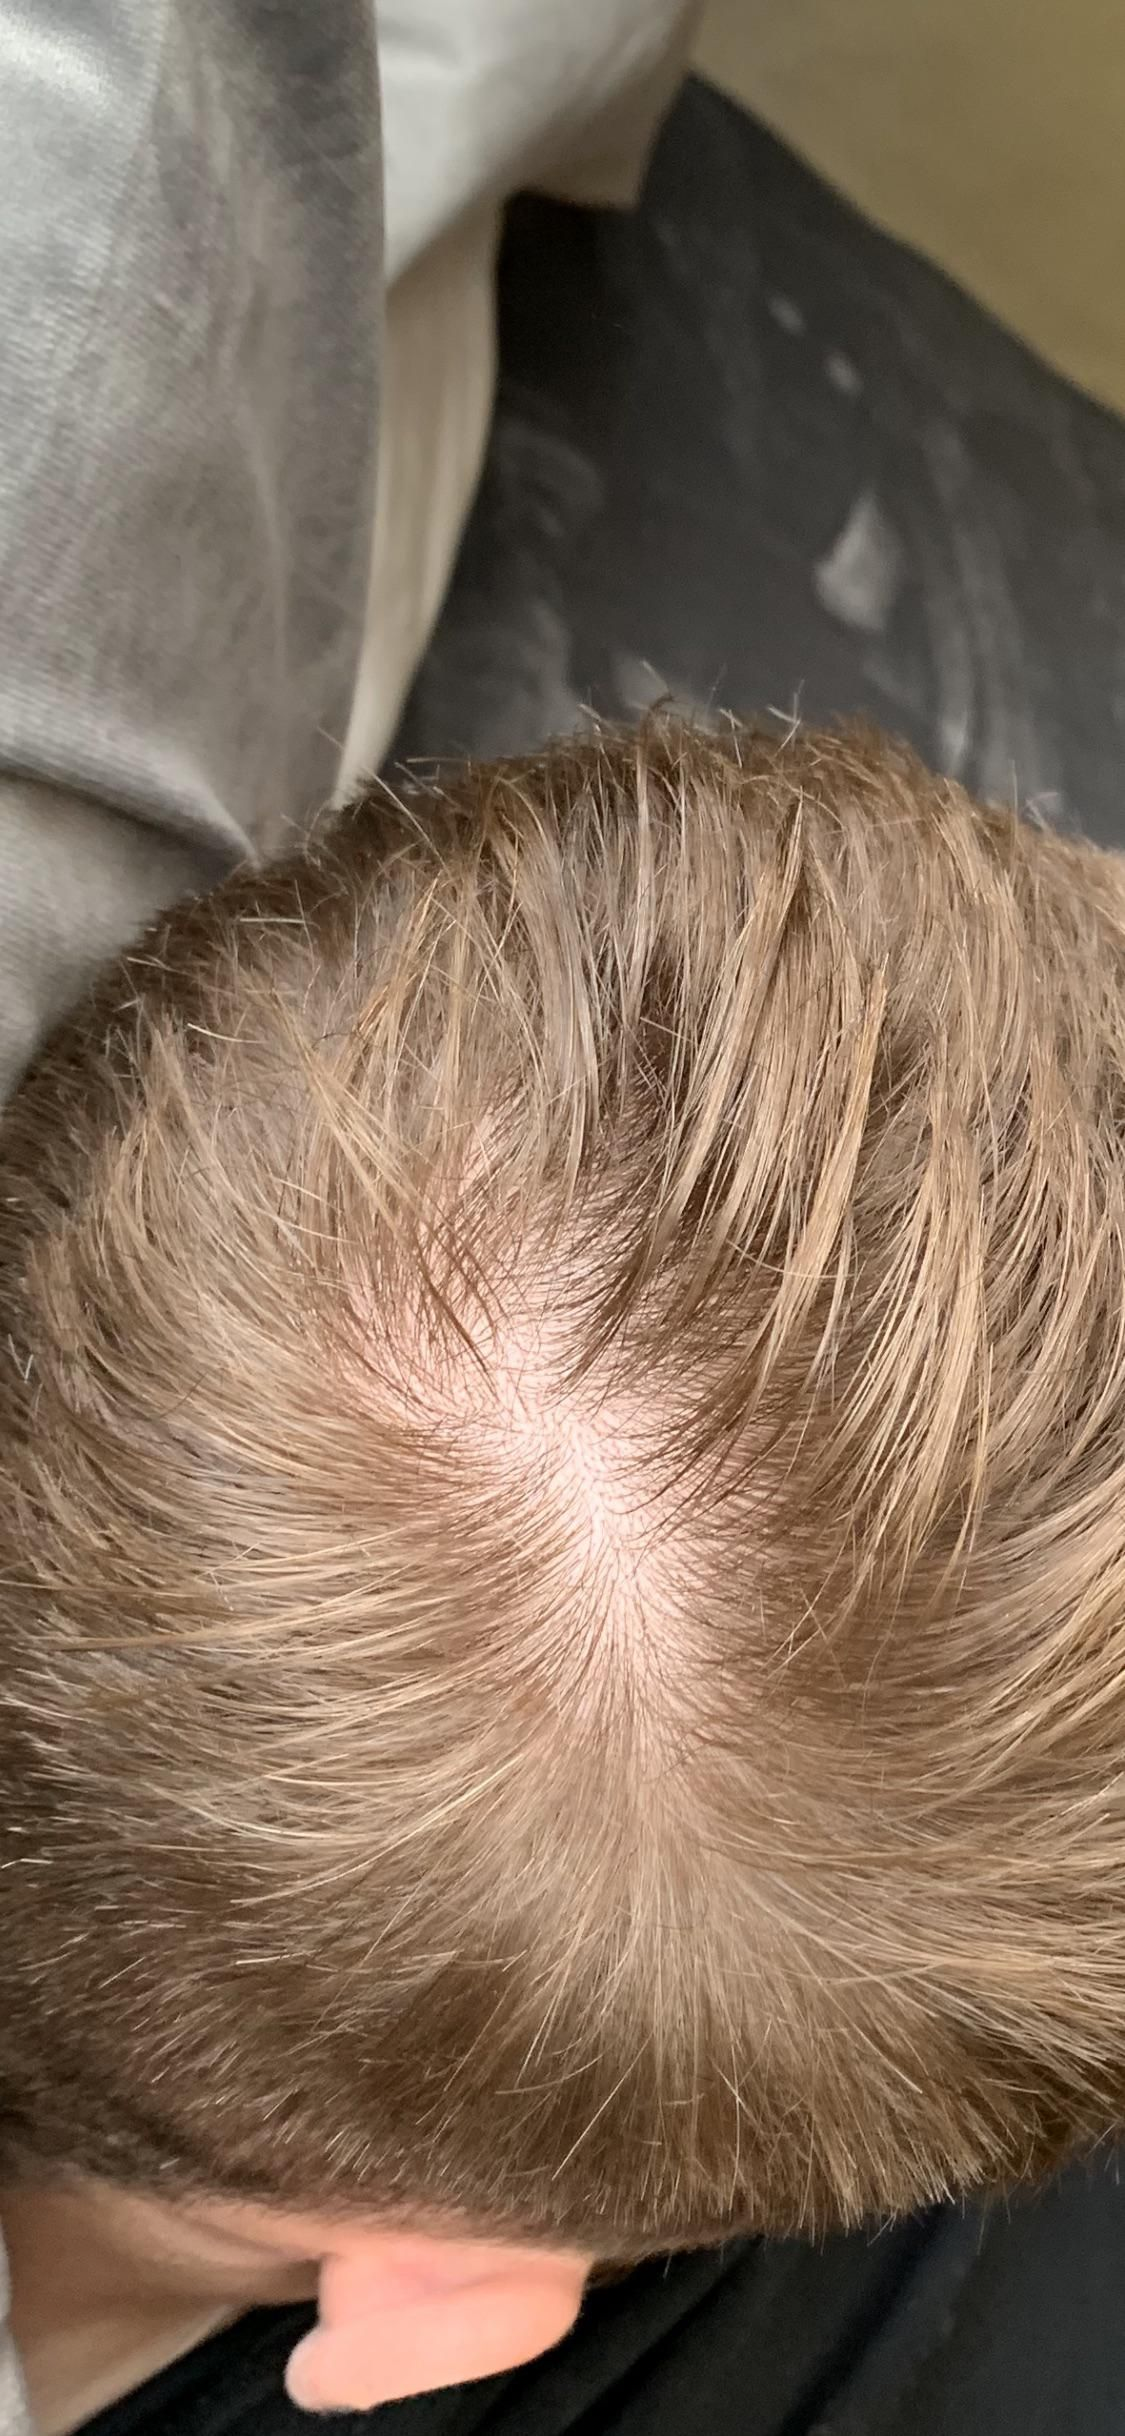 Am I Balding Ive Always Thought I Had A Thin Crown But After Taking A Few Pictures And People Joking About Me Going Bald I Am I Balding Going Bald Hair